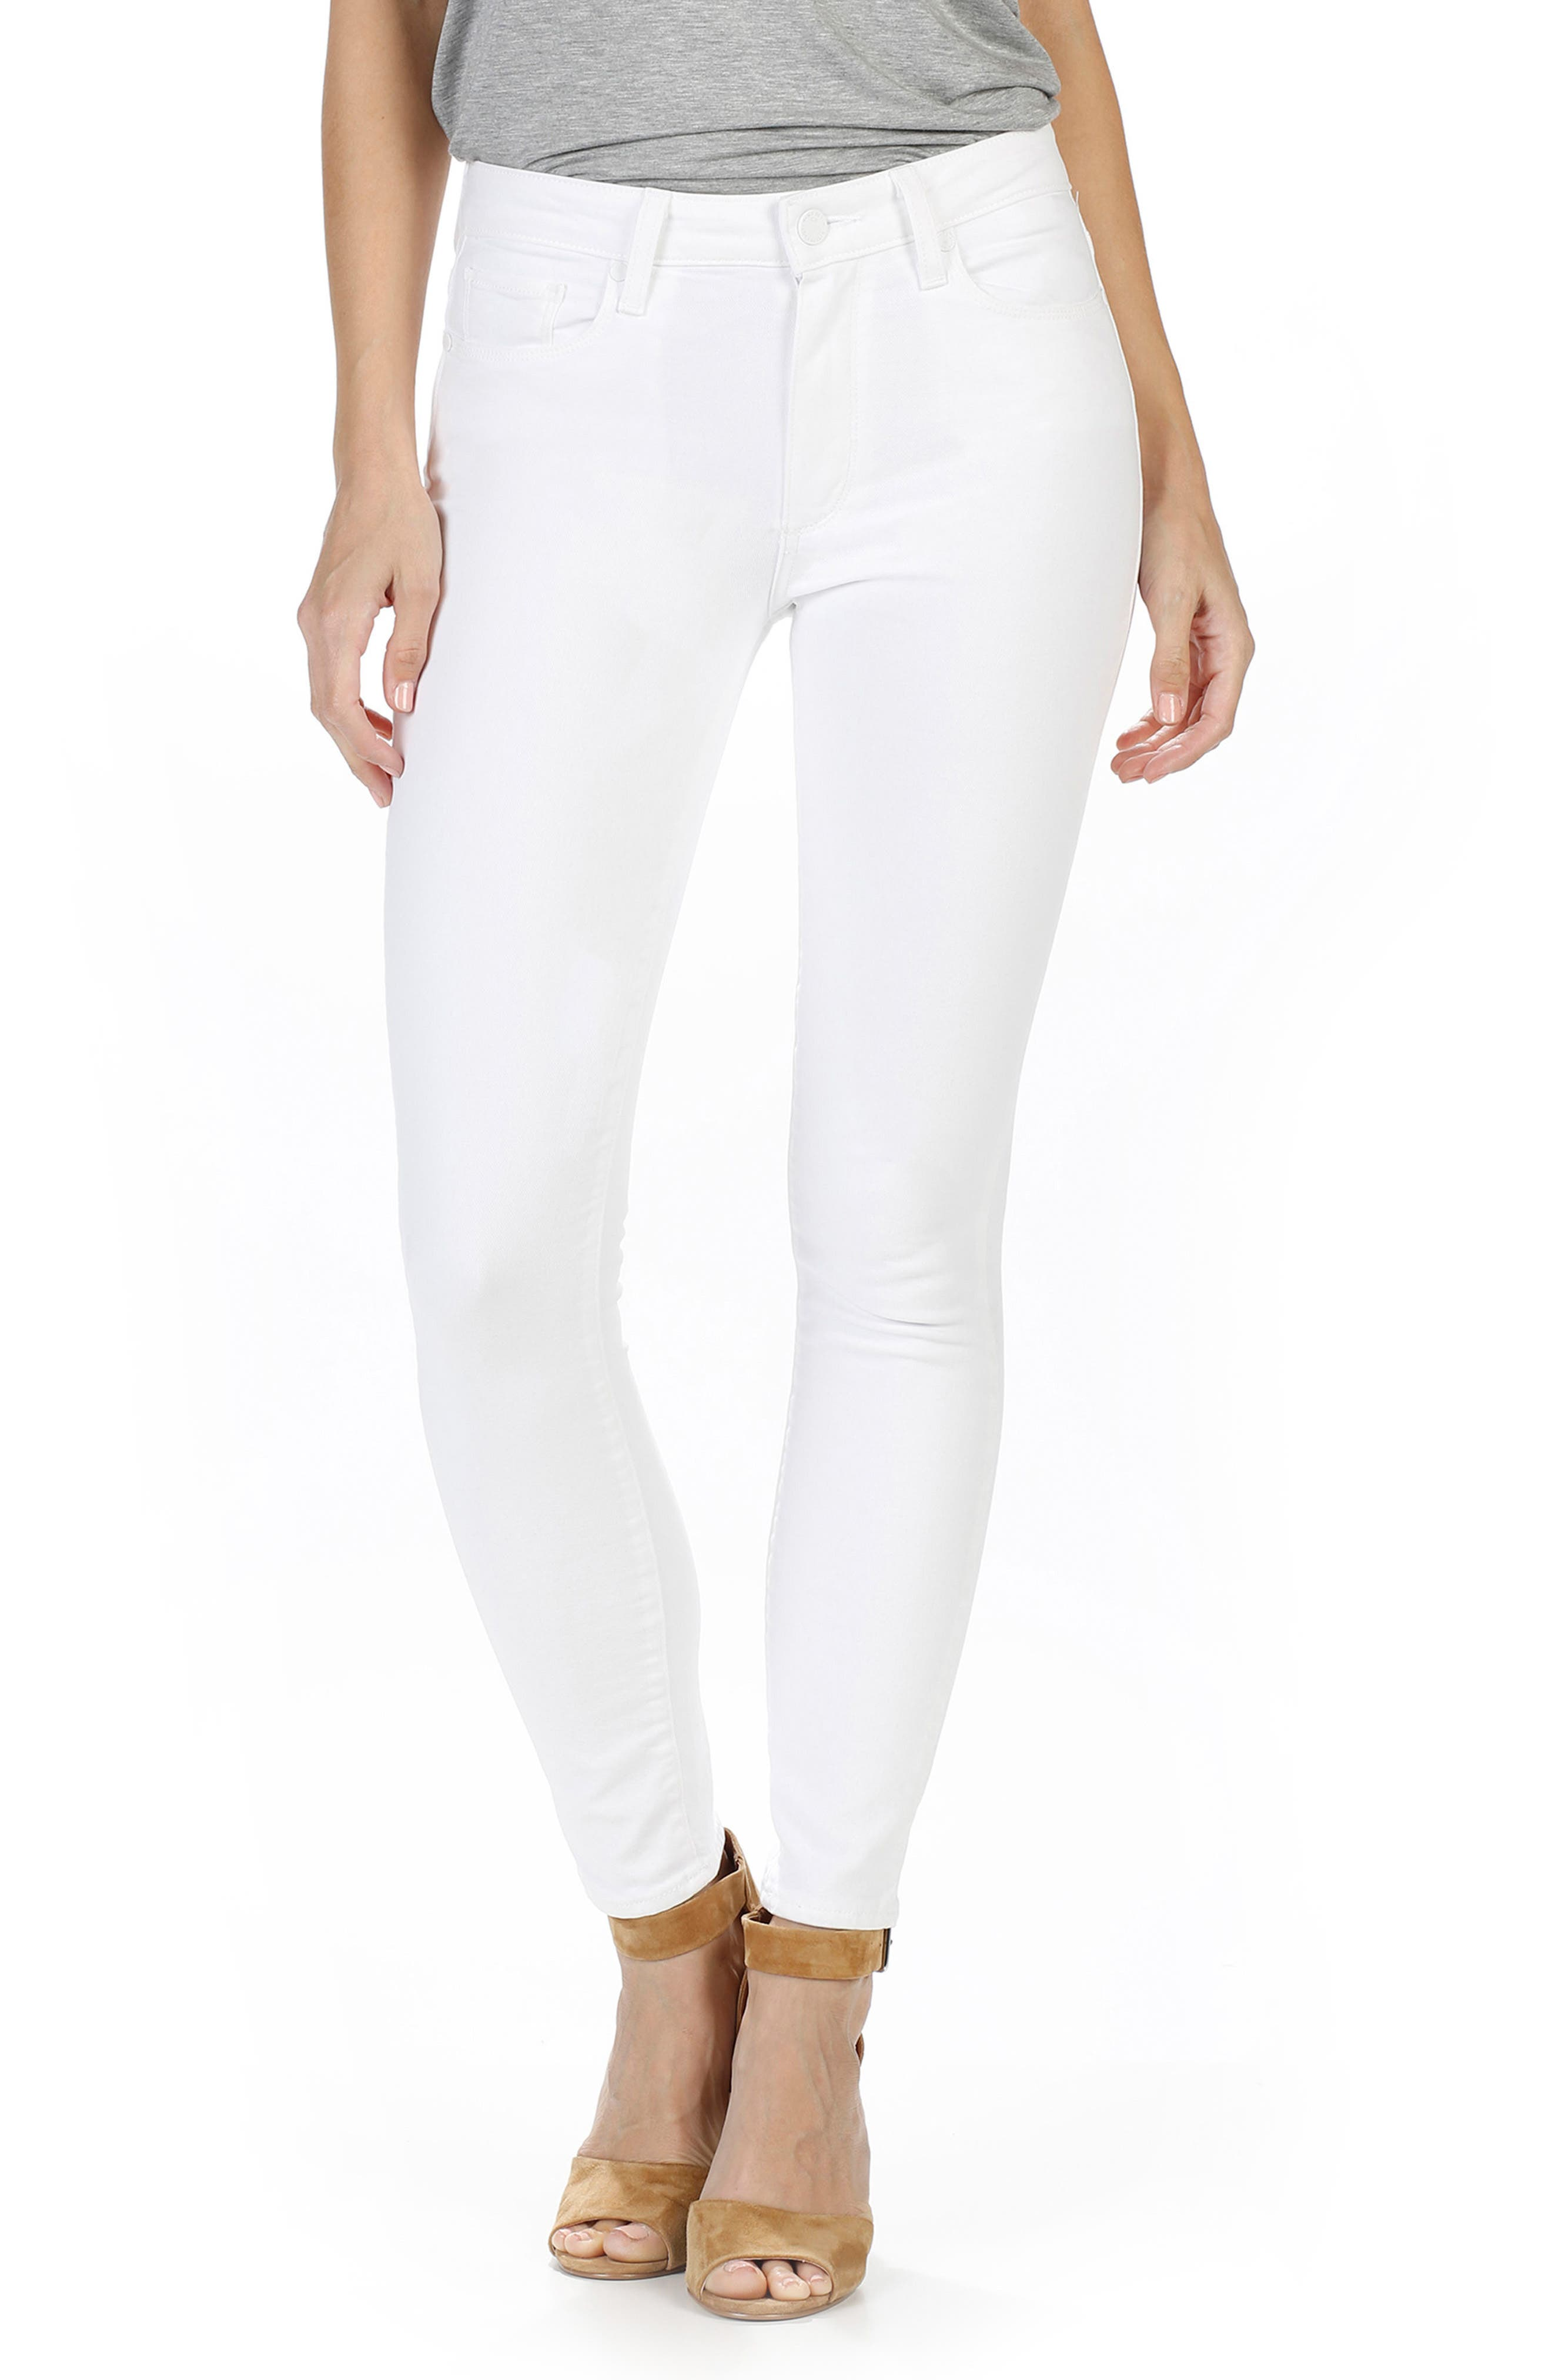 Hoxton High Waist Ankle Skinny Jeans,                         Main,                         color, Optic White